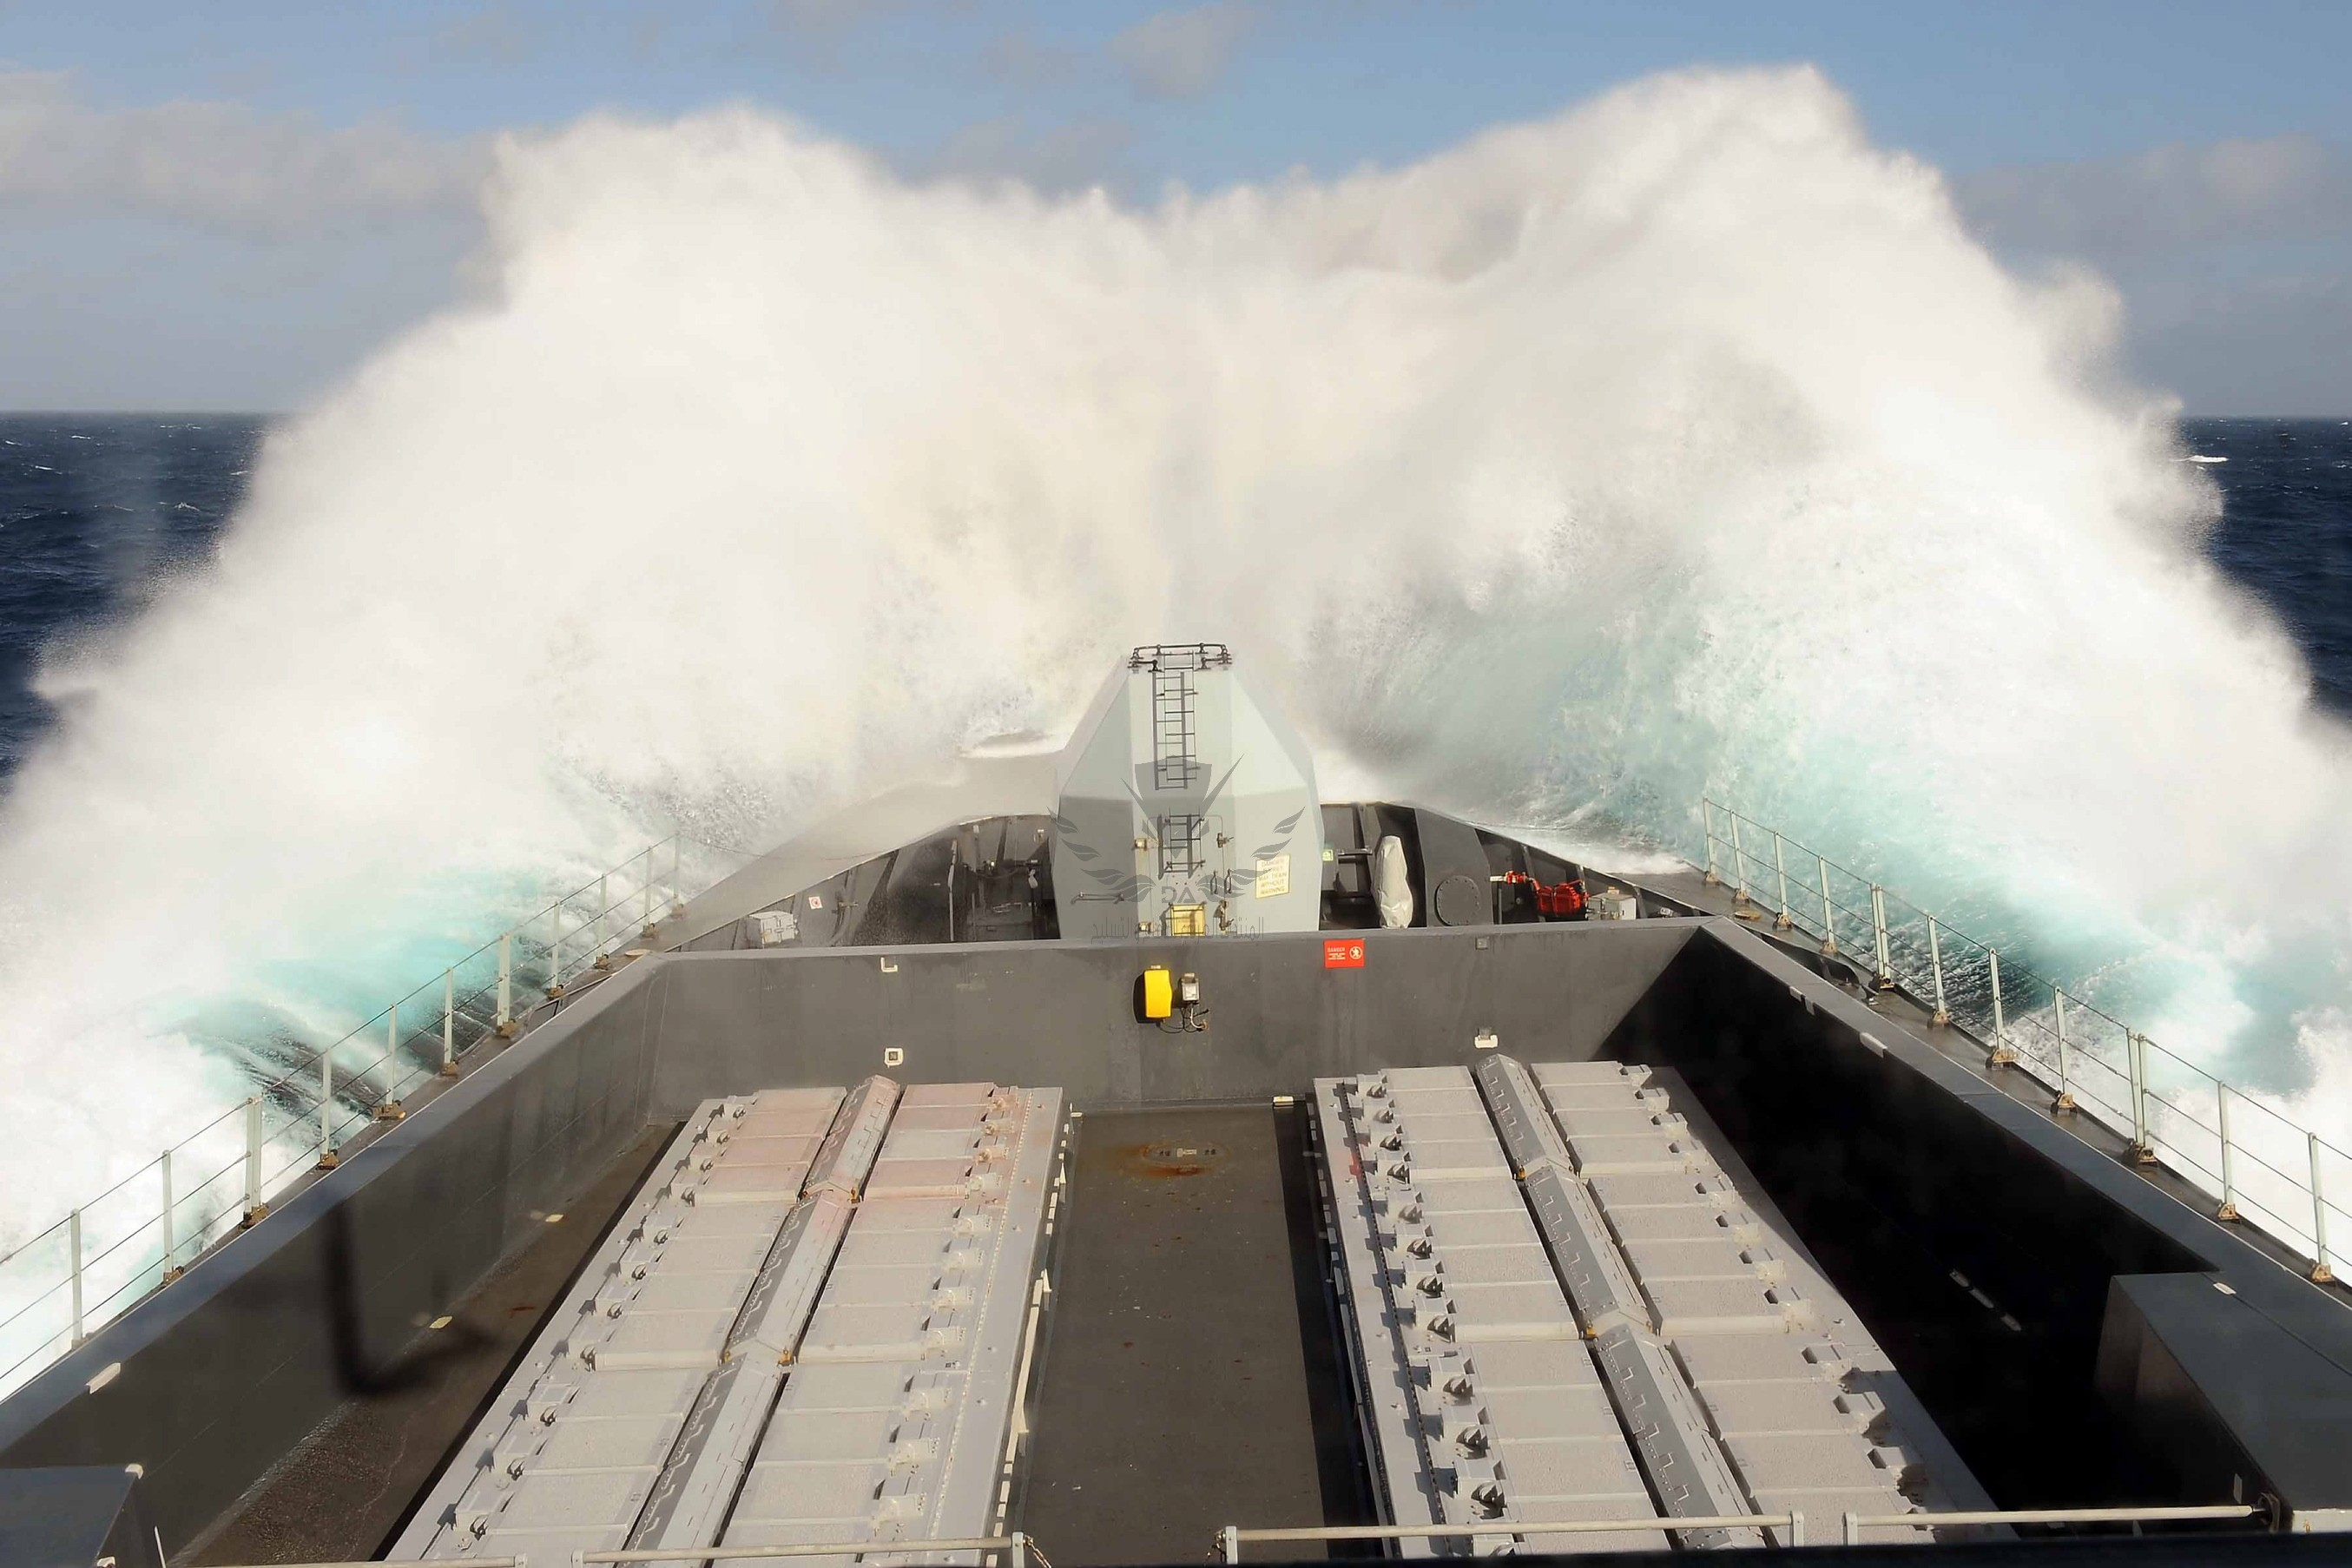 Royal_Navy_Ship_in_Rough_Weather_MOD_45154618-1.jpg